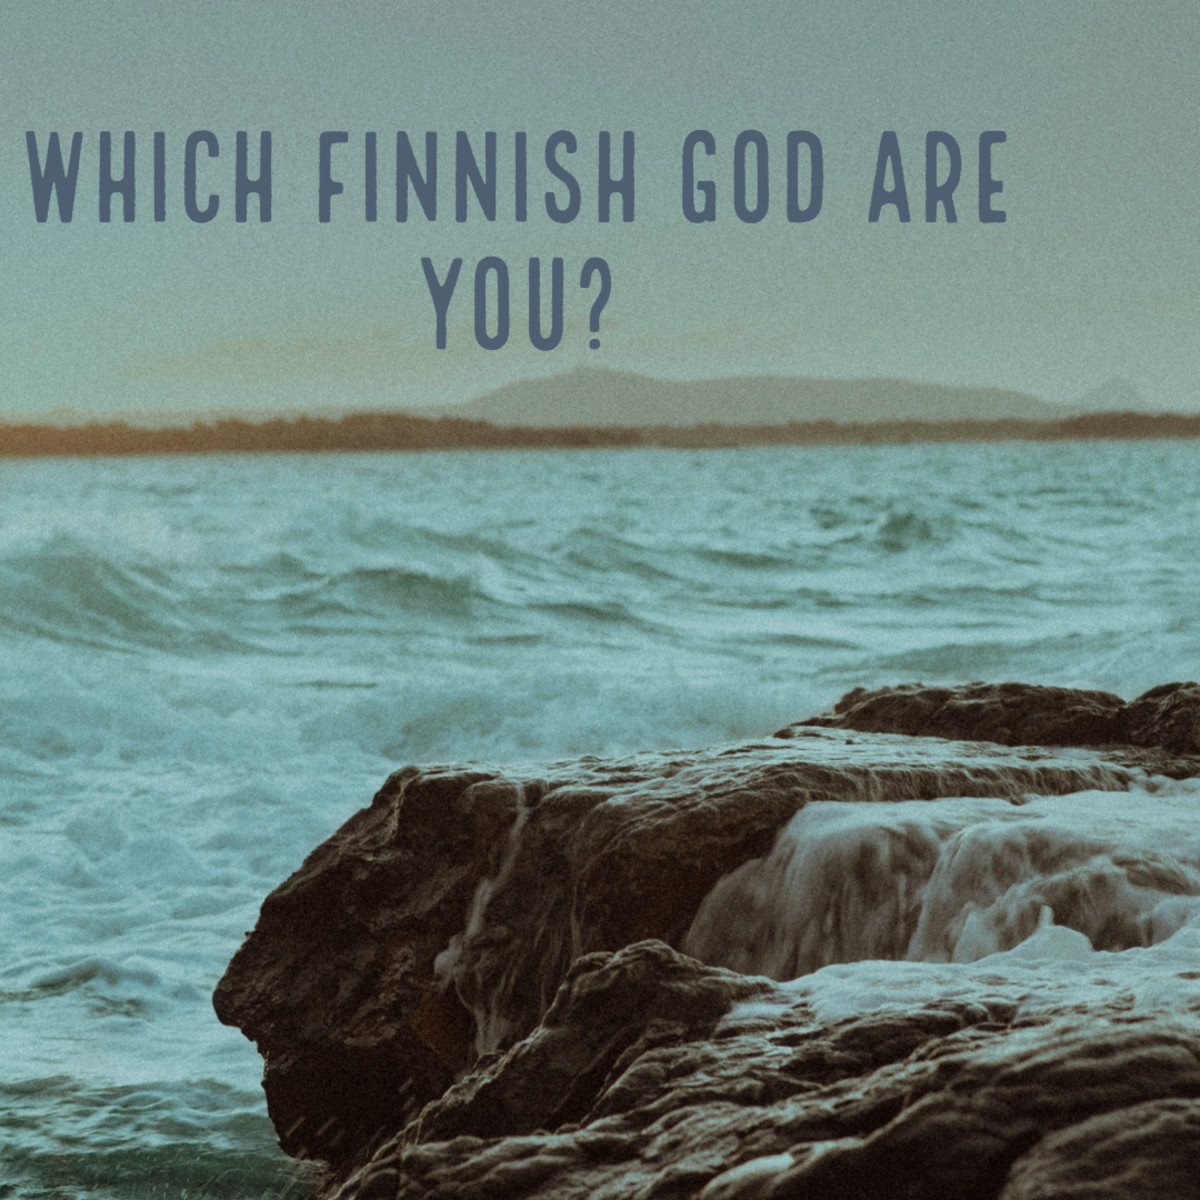 Which Finnish God Are You? The Powers of Tapio, Ahti, and Ukko